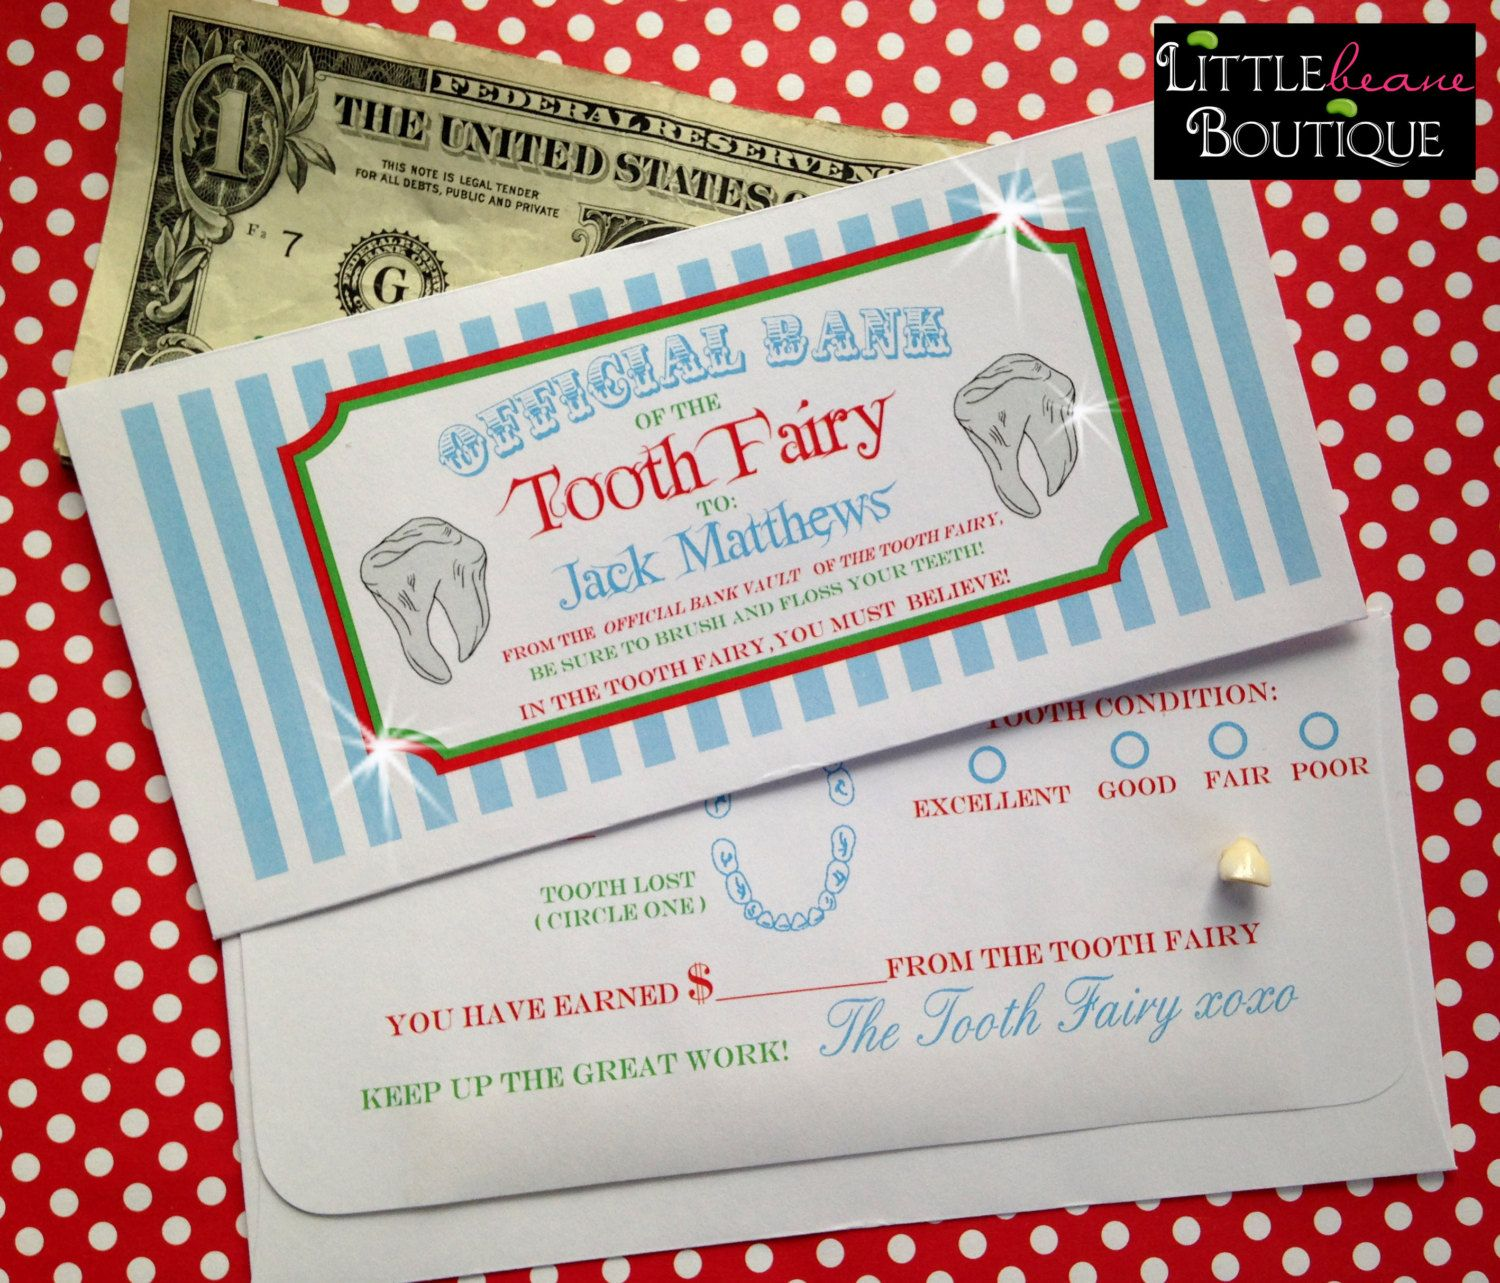 Personalized Tooth Fairy Money Envelopes by LittlebeaneBoutique, $3.50